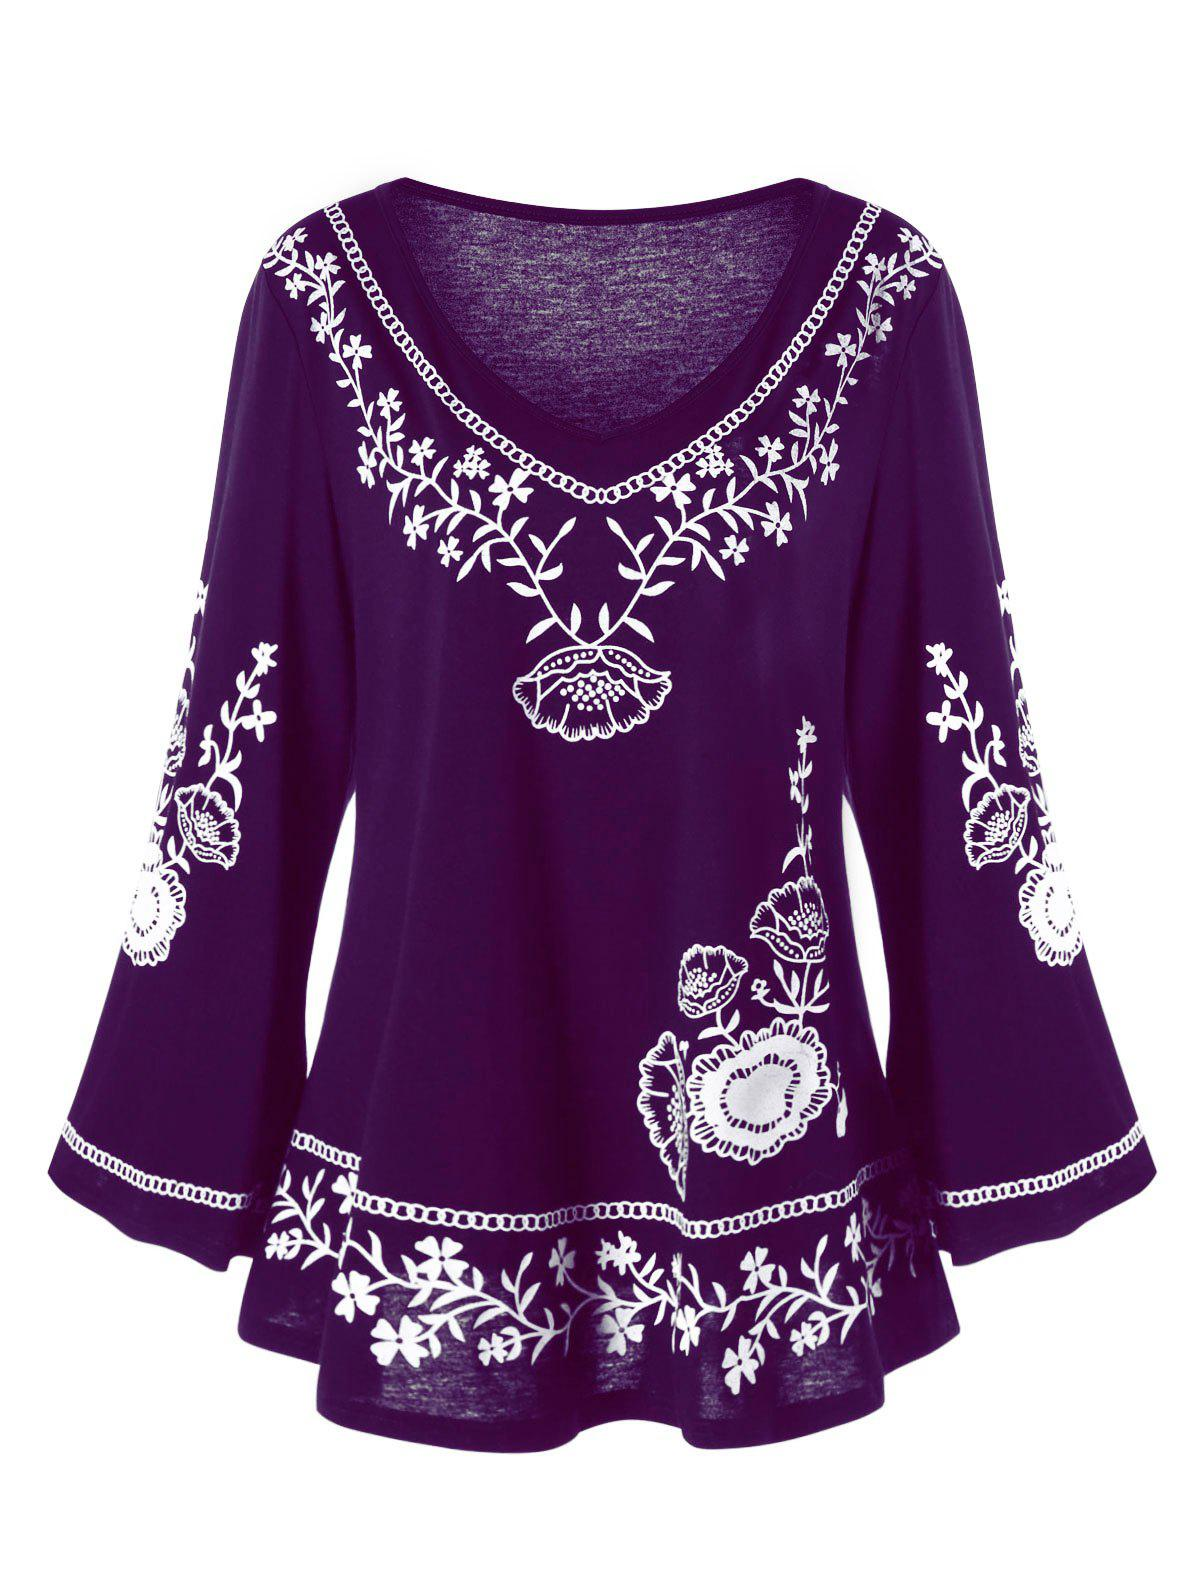 Plus Size Monochrome Floral Bell Sleeve TopWOMEN<br><br>Size: 4XL; Color: PURPLE; Material: Polyester,Spandex; Shirt Length: Long; Sleeve Length: Full; Collar: V-Neck; Style: Casual; Season: Fall,Spring; Pattern Type: Floral; Weight: 0.3100kg; Package Contents: 1 x Top;